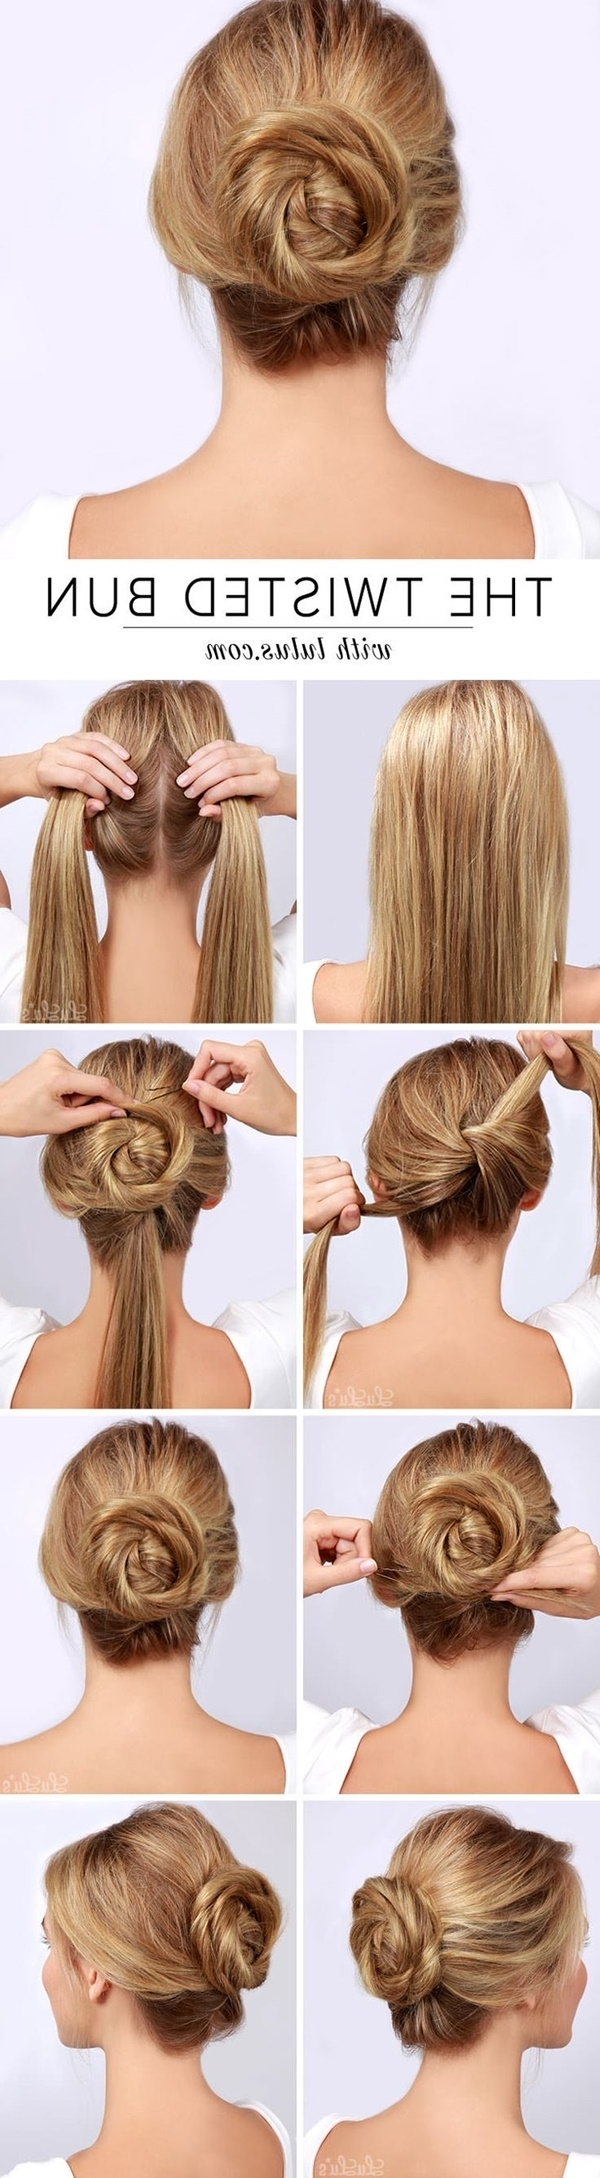 101 Cute & Easy Bun Hairstyles For Long Hair And Medium Hair With Regard To Simple Updo Hairstyles For Long Hair (View 8 of 15)